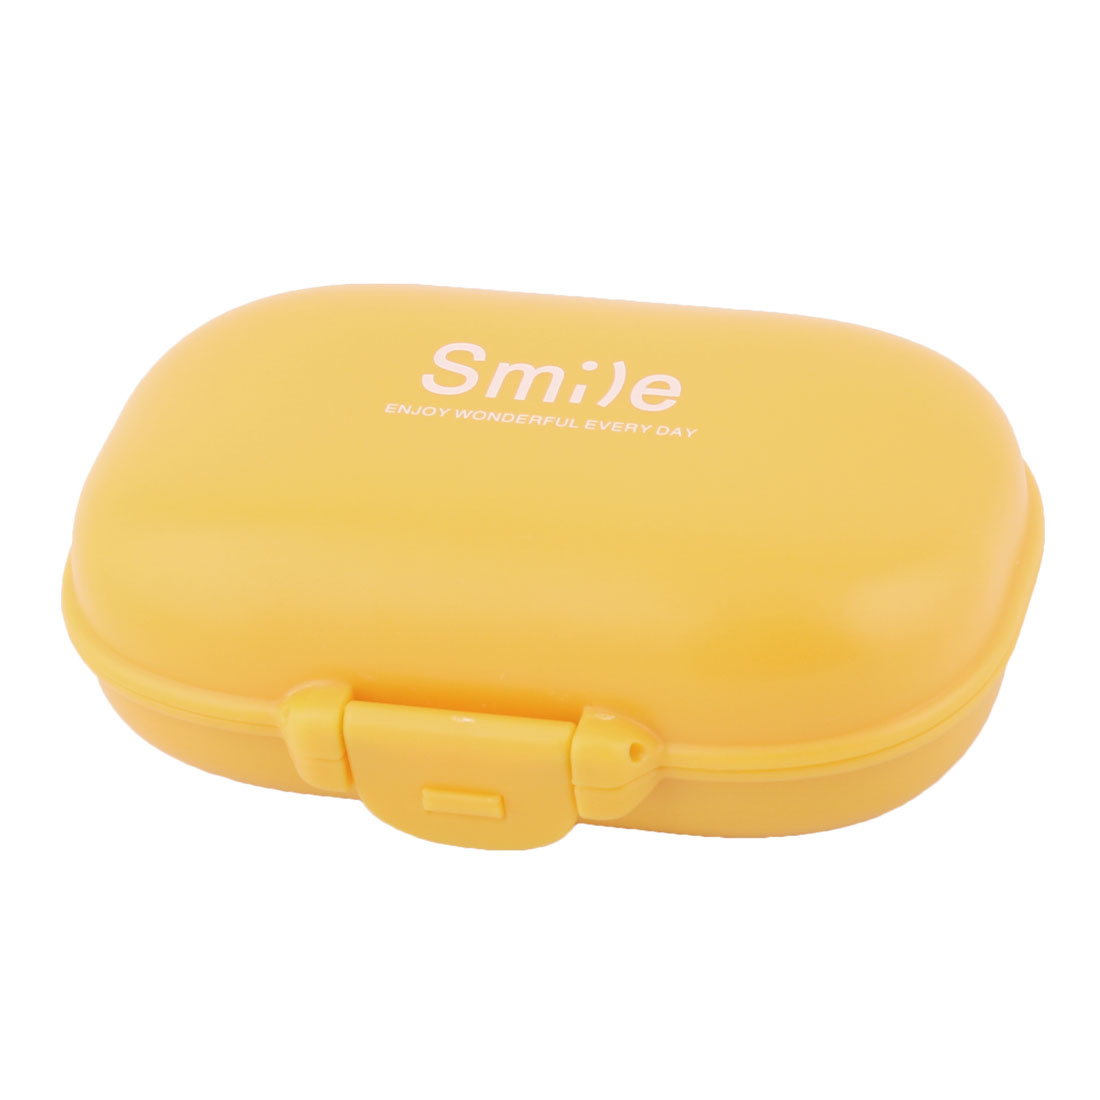 Home Travel Plastic 4 Slots Medicine Pill Capsule Storage Box Organizer Orange